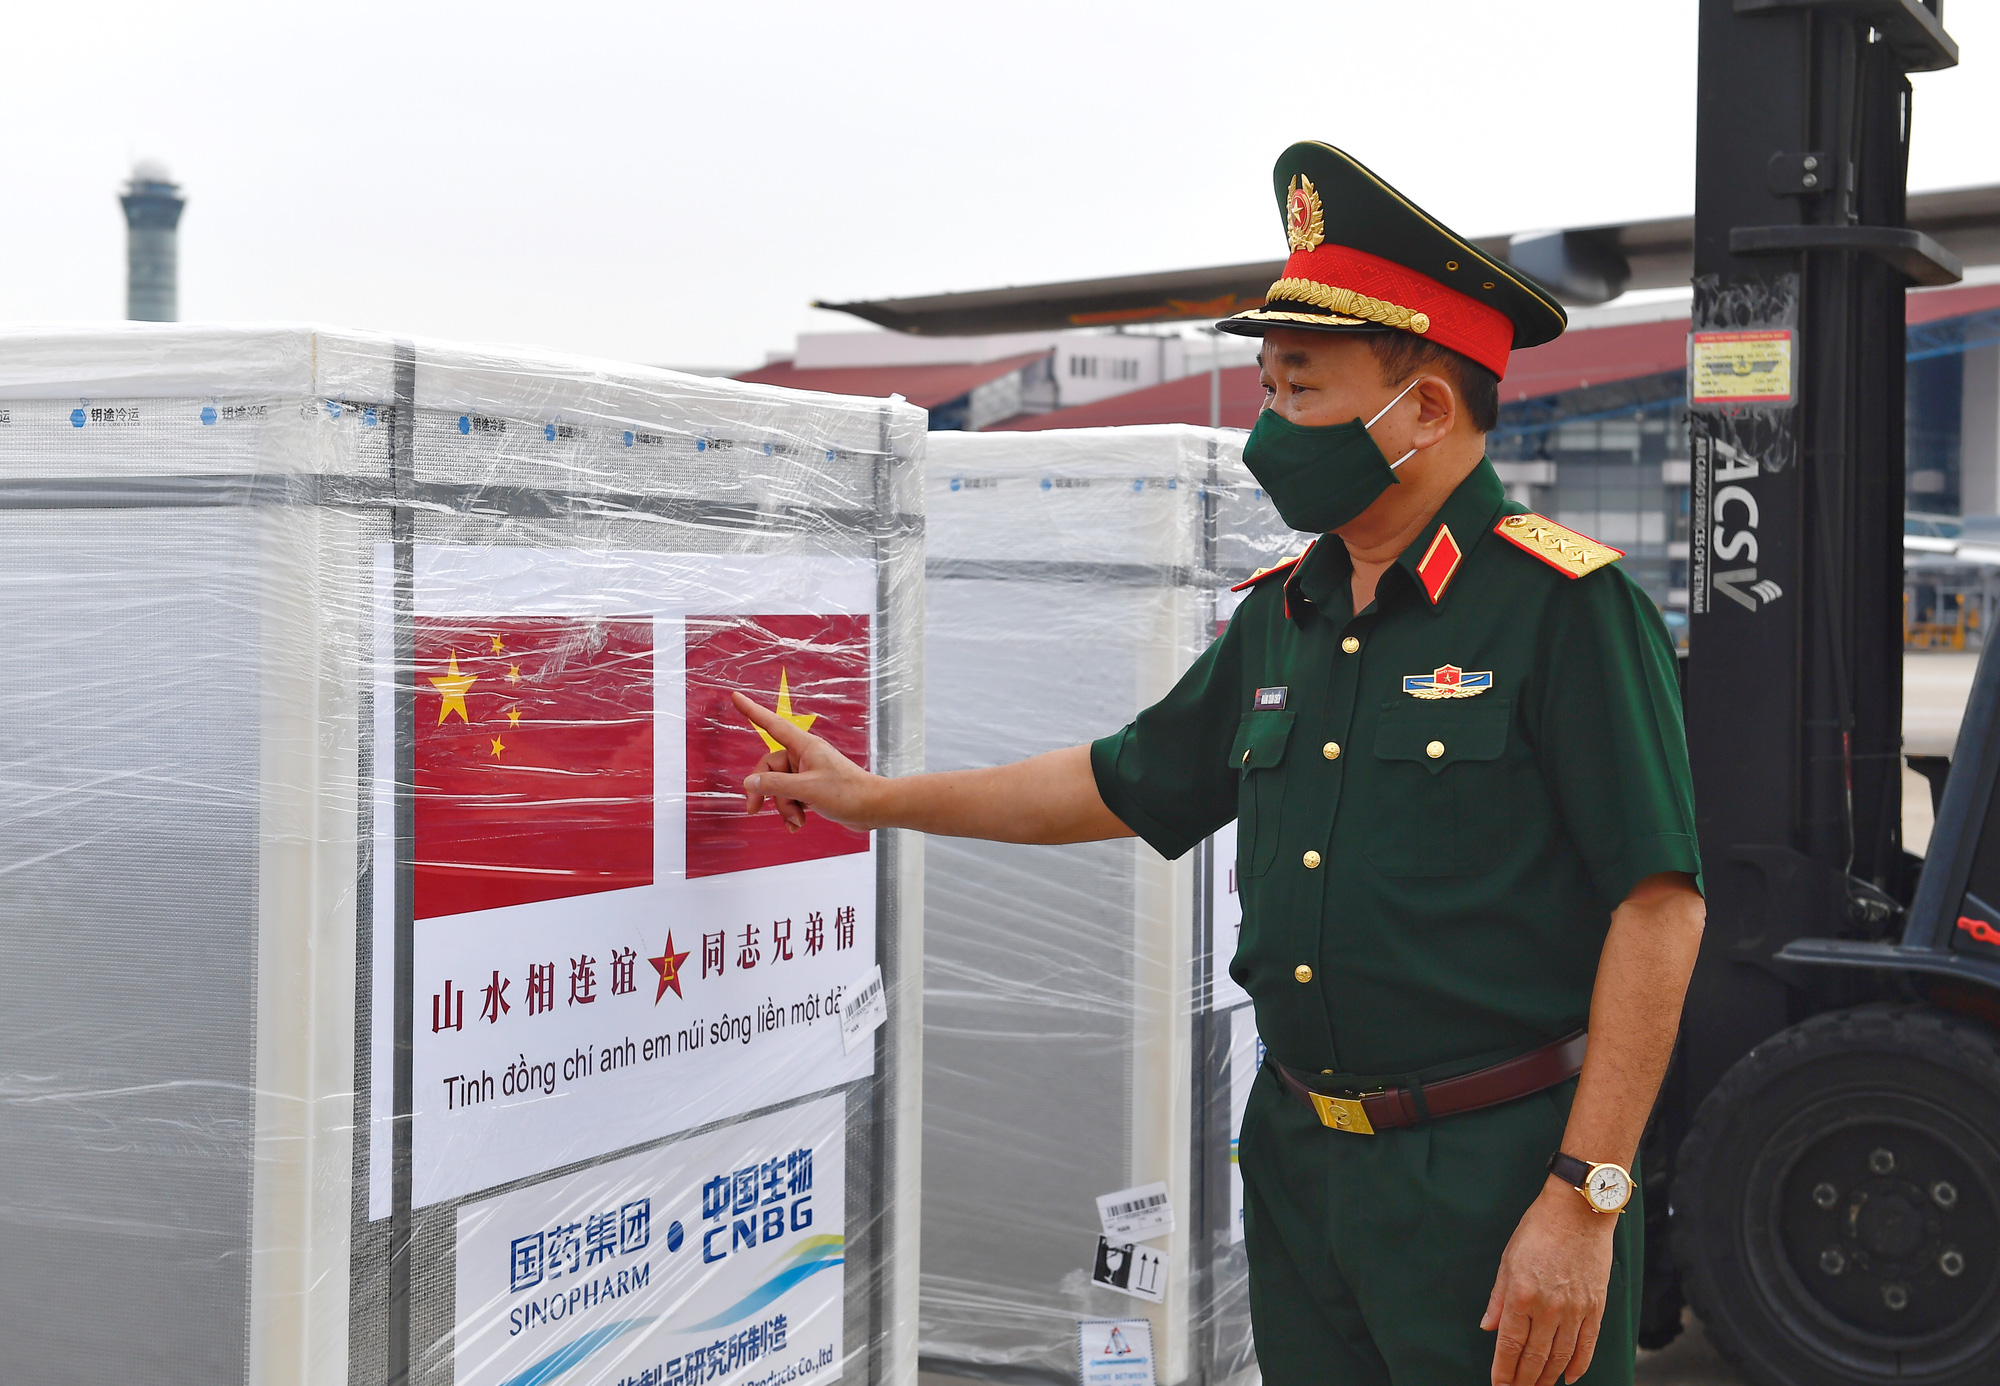 Vietnamese Deputy Minister of National Defense Hoang Xuan Chien stands next to the shipment of Sinopharm vaccine at Noi Bai International Airport in Hanoi, August 23, 2021 in this supplied photo.